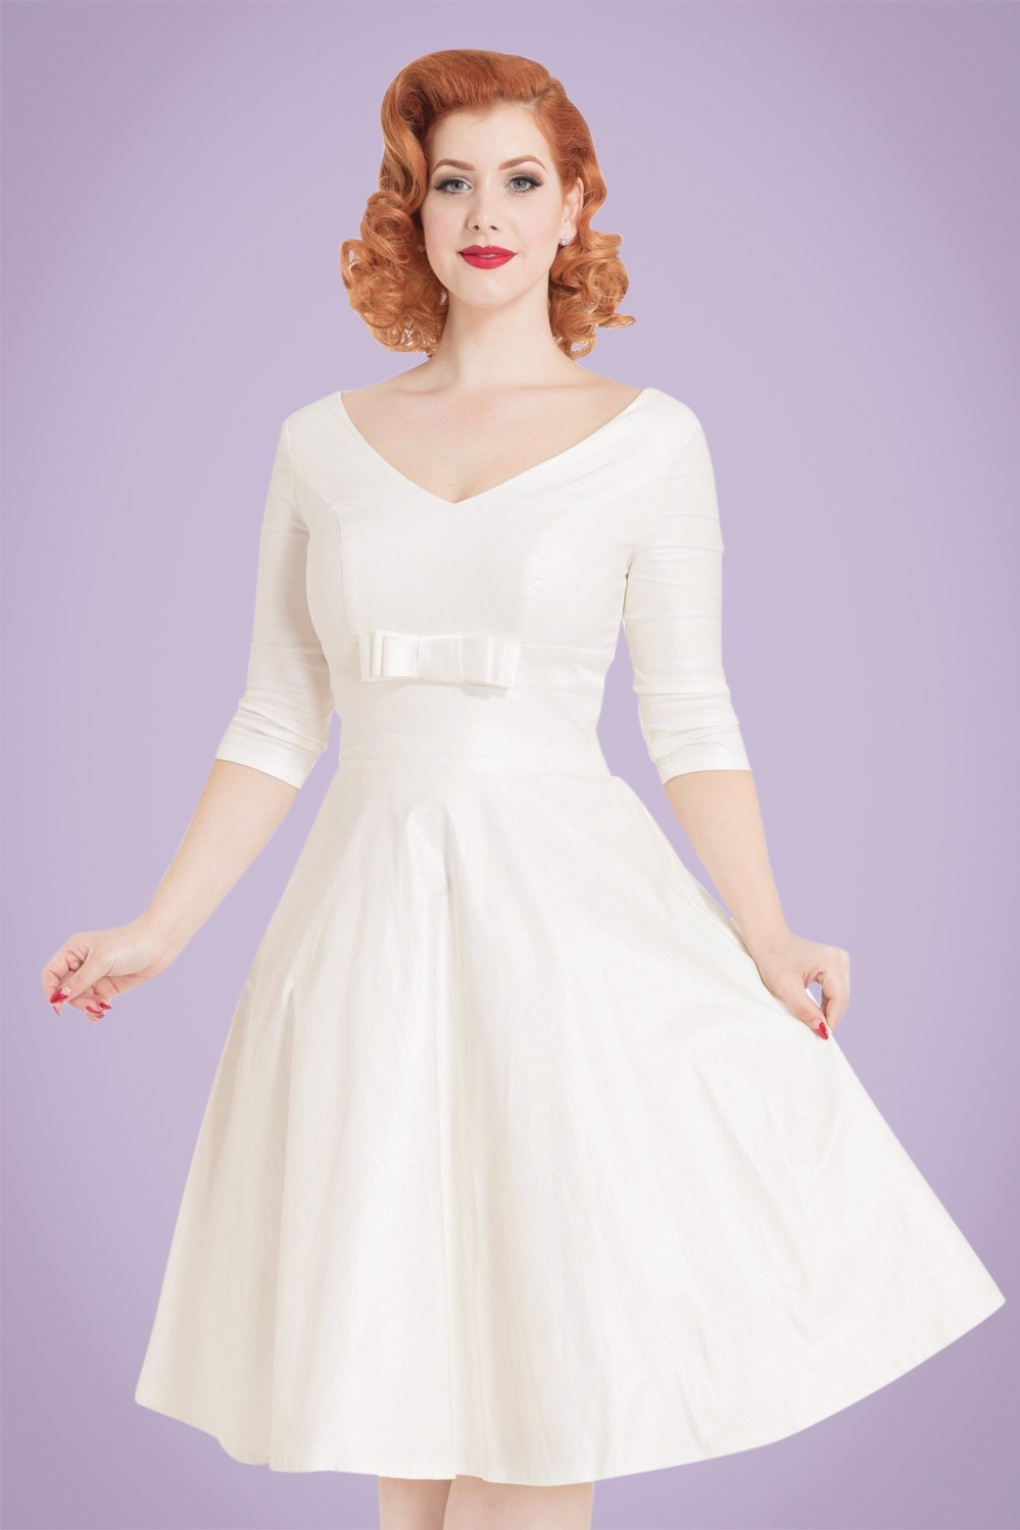 Vintage Inspired Cocktail Dresses, Party Dresses 50s Dorothy Bridal Swing Dress in Ivory £127.27 AT vintagedancer.com